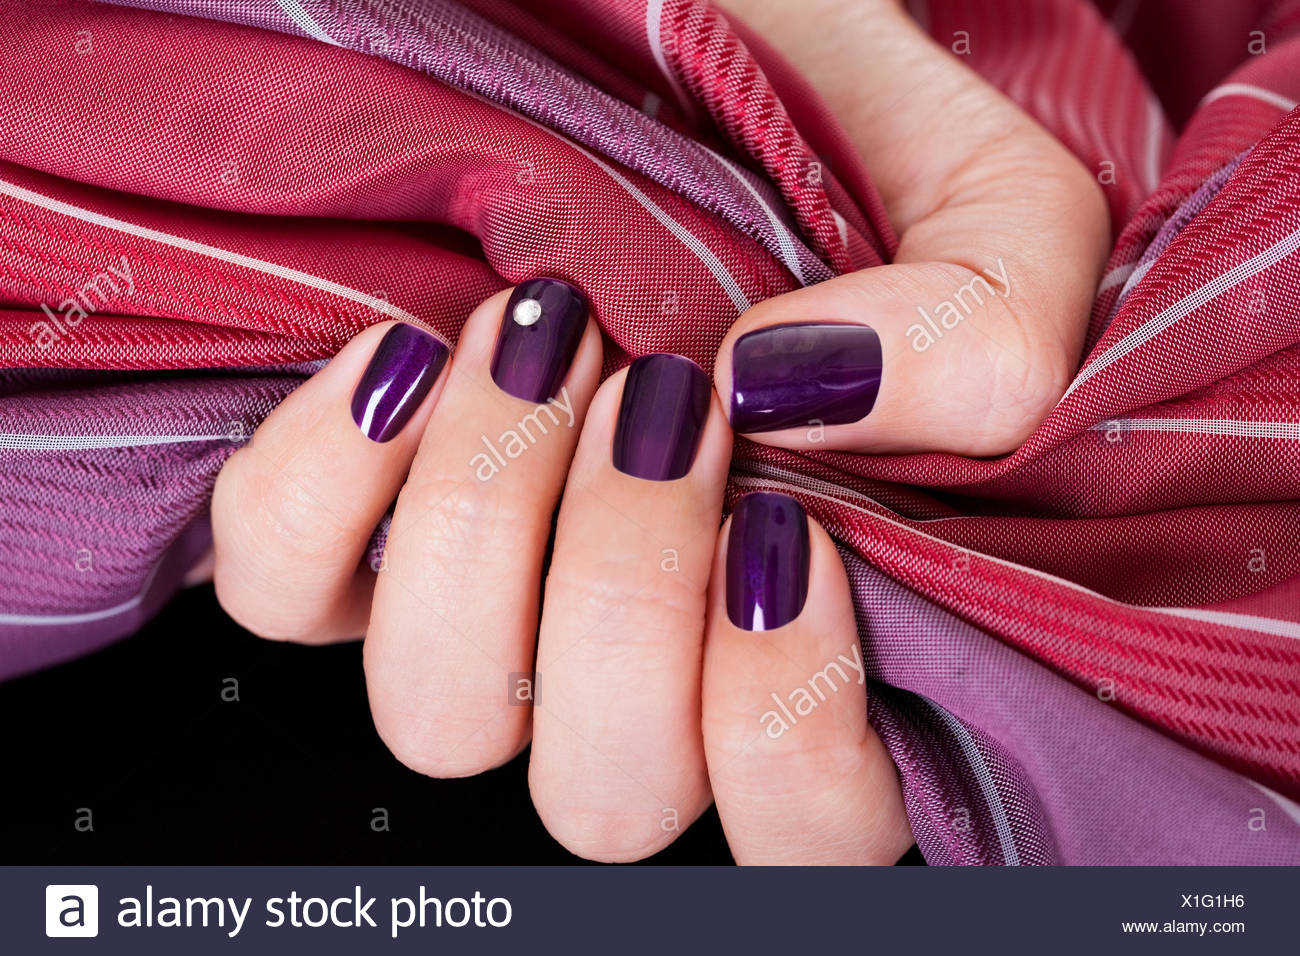 Woman with beautiful purple nails gripping a color matched maroon ...